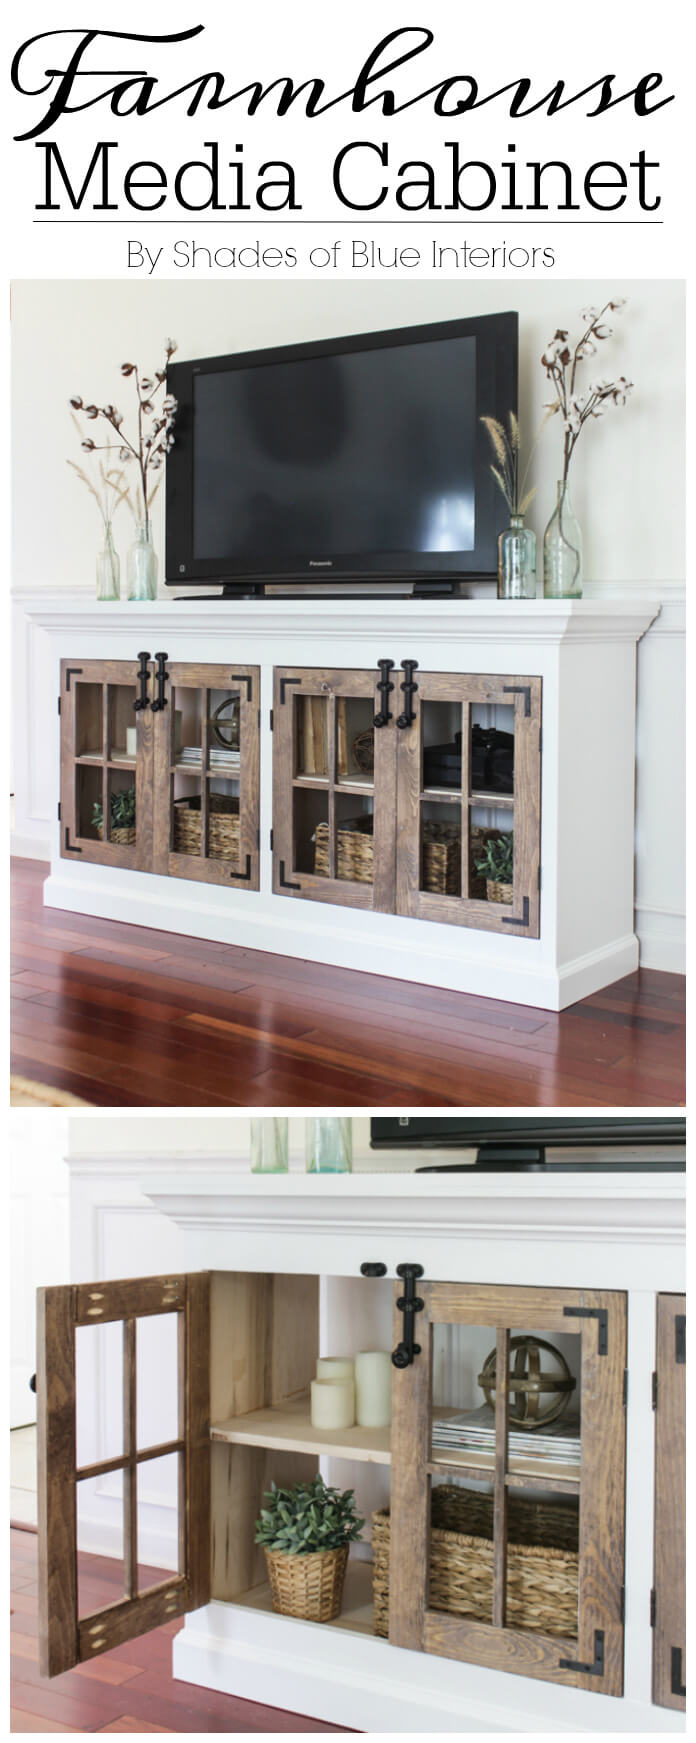 How to Work TVs into Farmhouse Décor